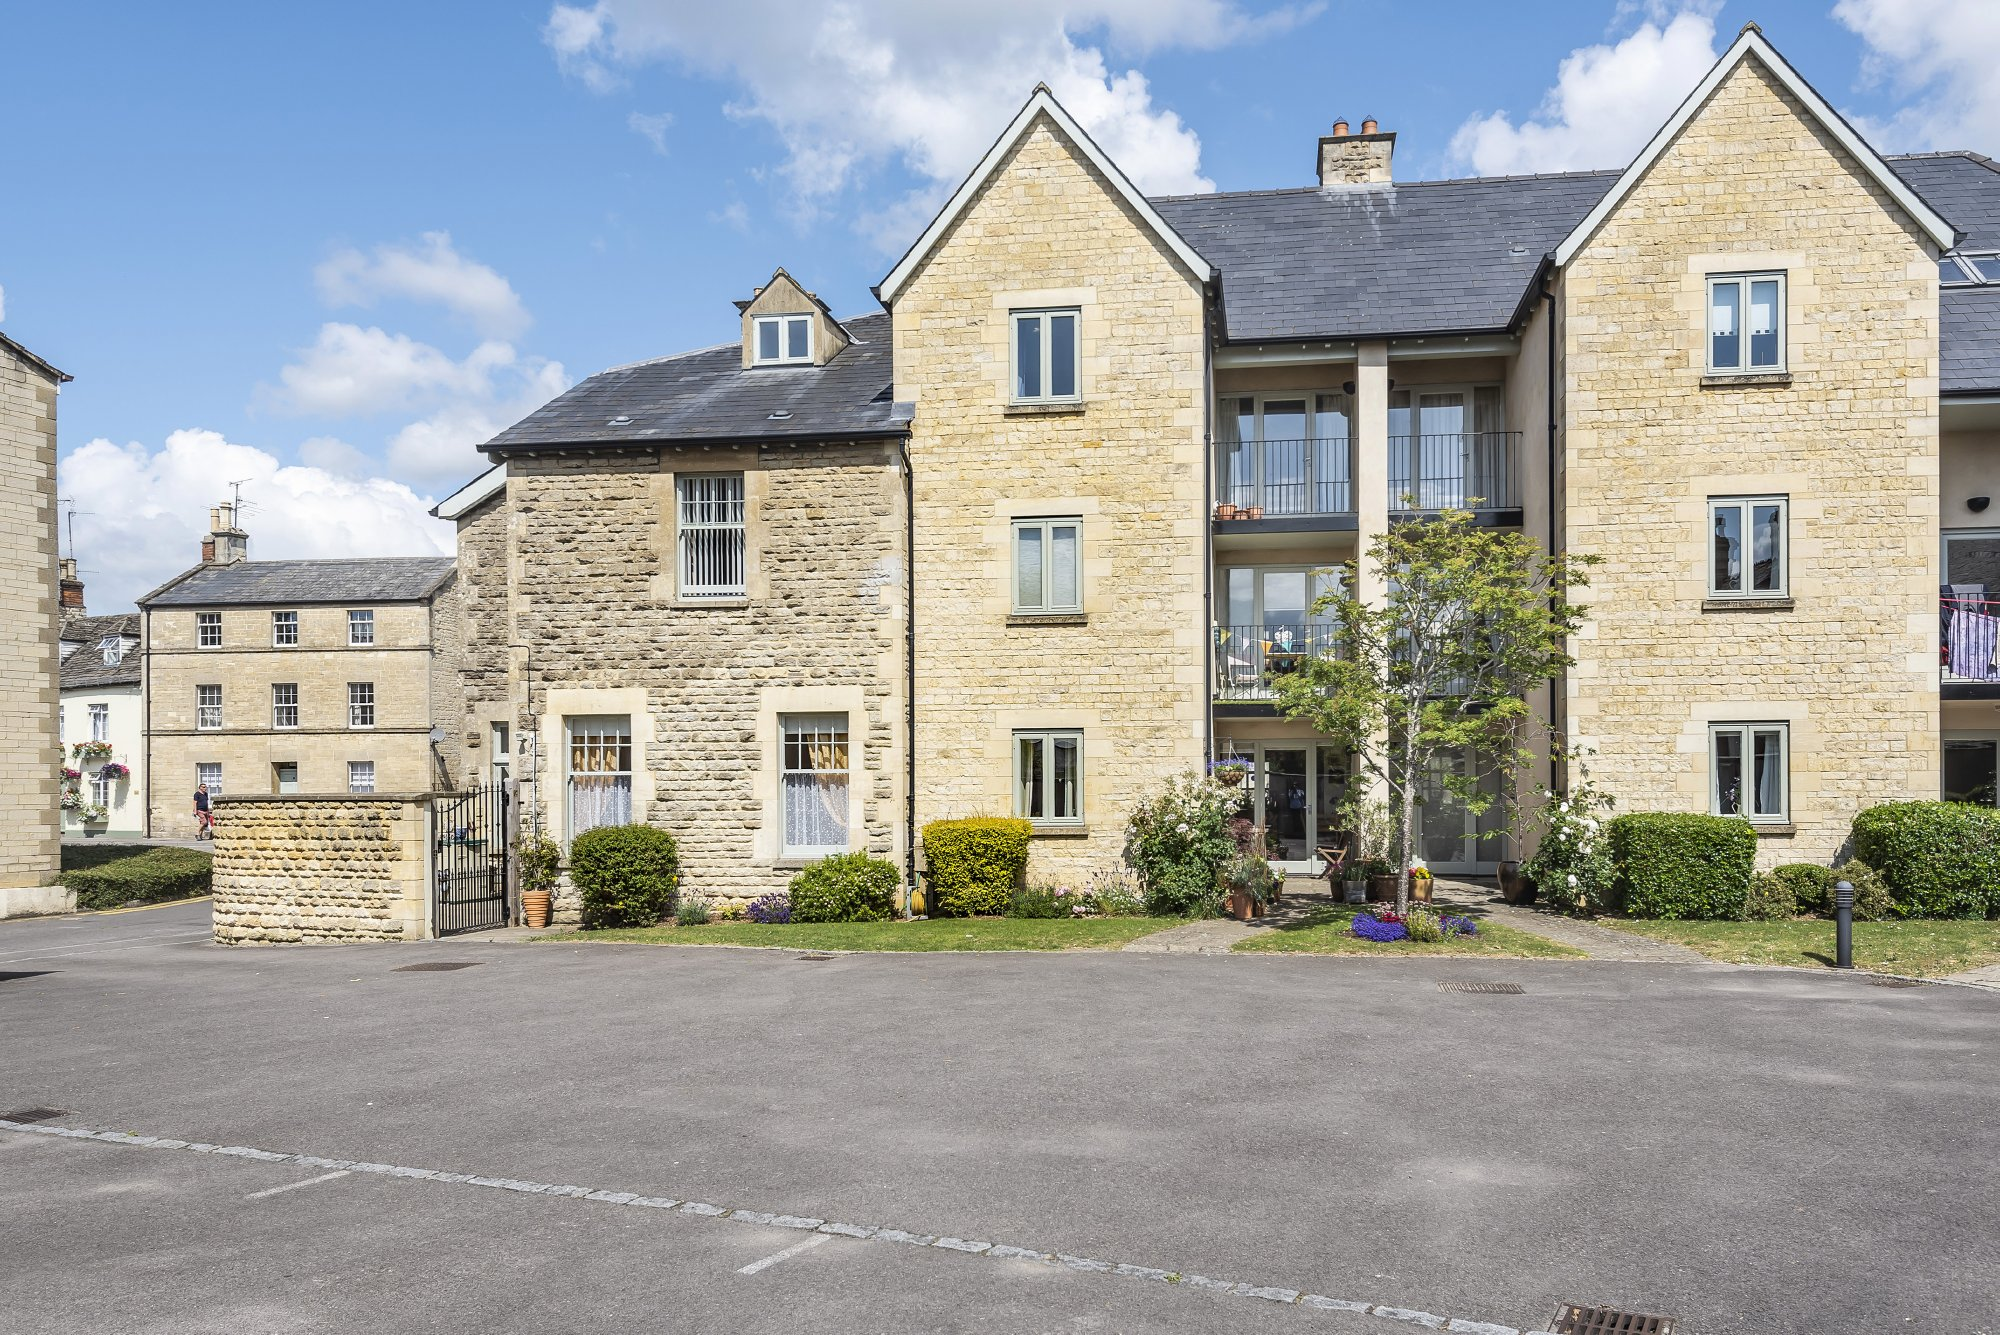 London Place, 2-4 London Road, Cirencester, GL7